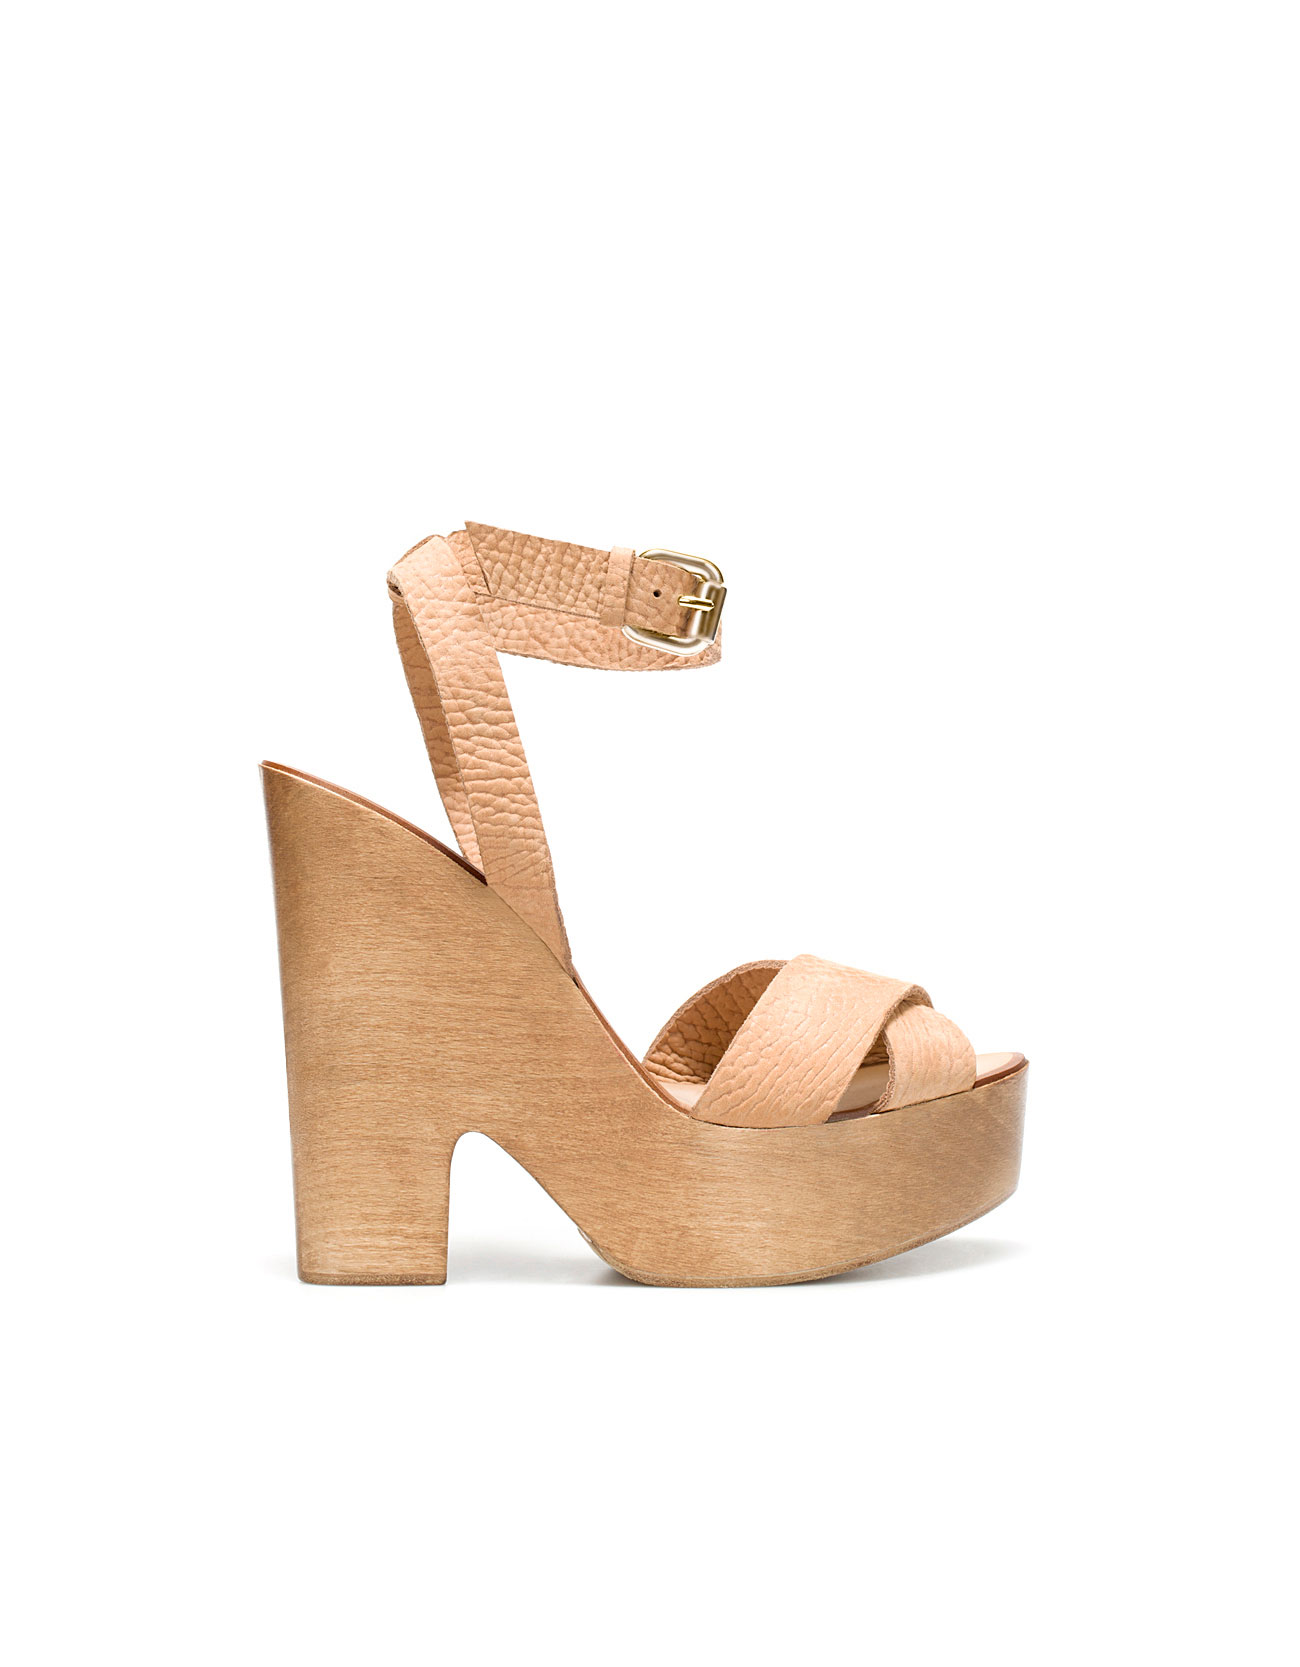 zara summer 2012 shoes hey